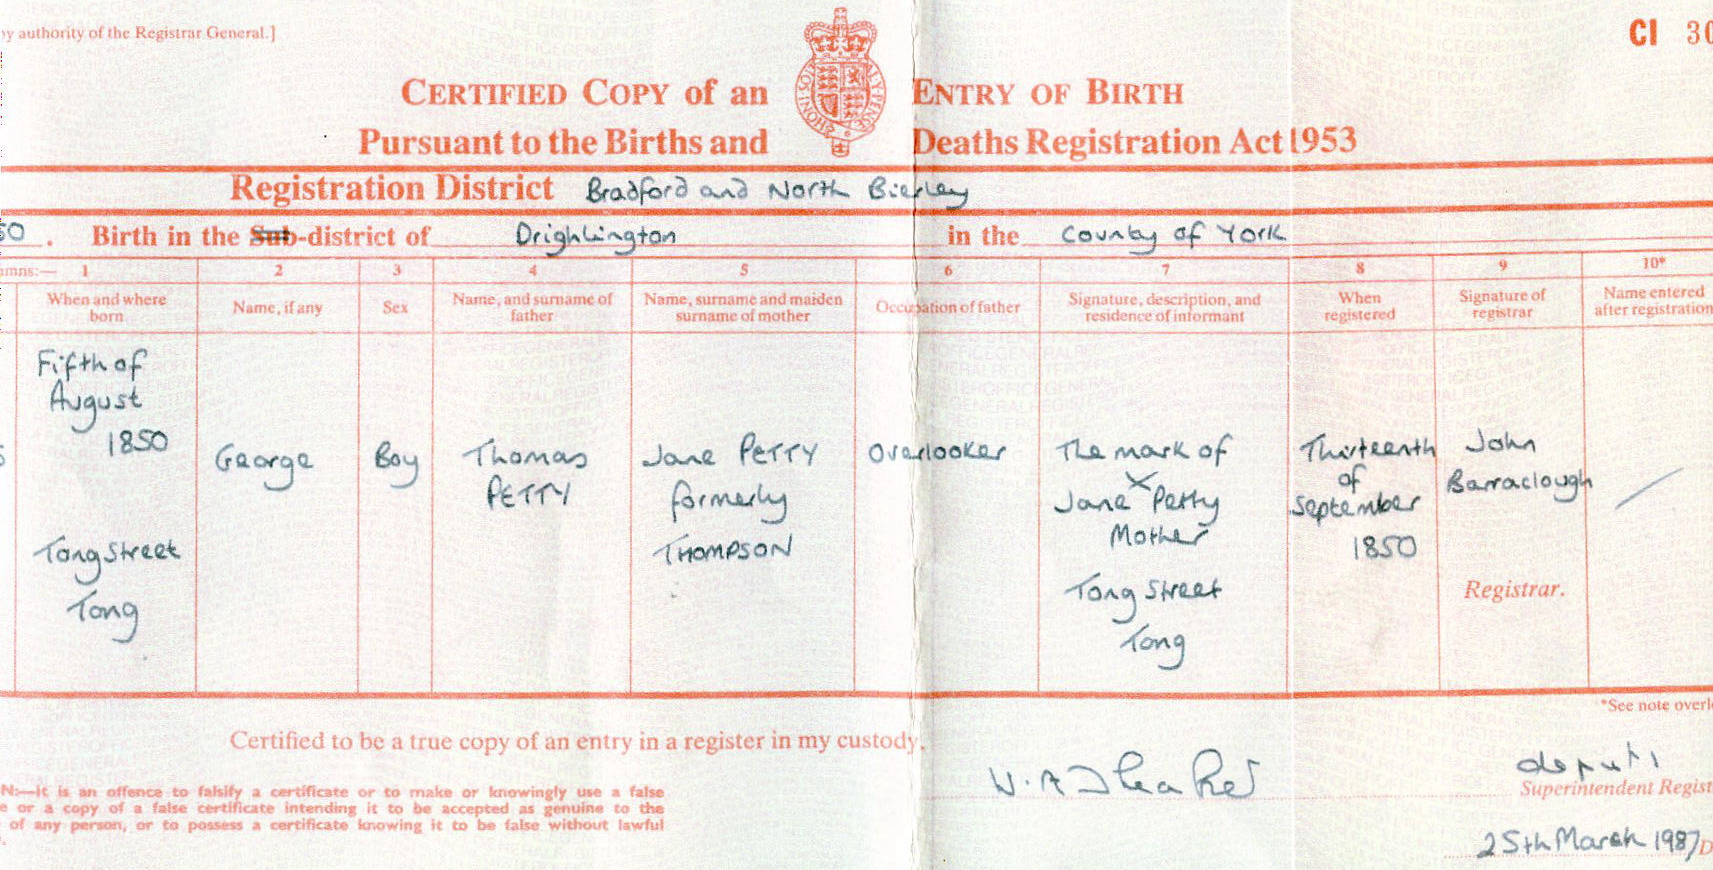 George Thompson Petty birth certificate